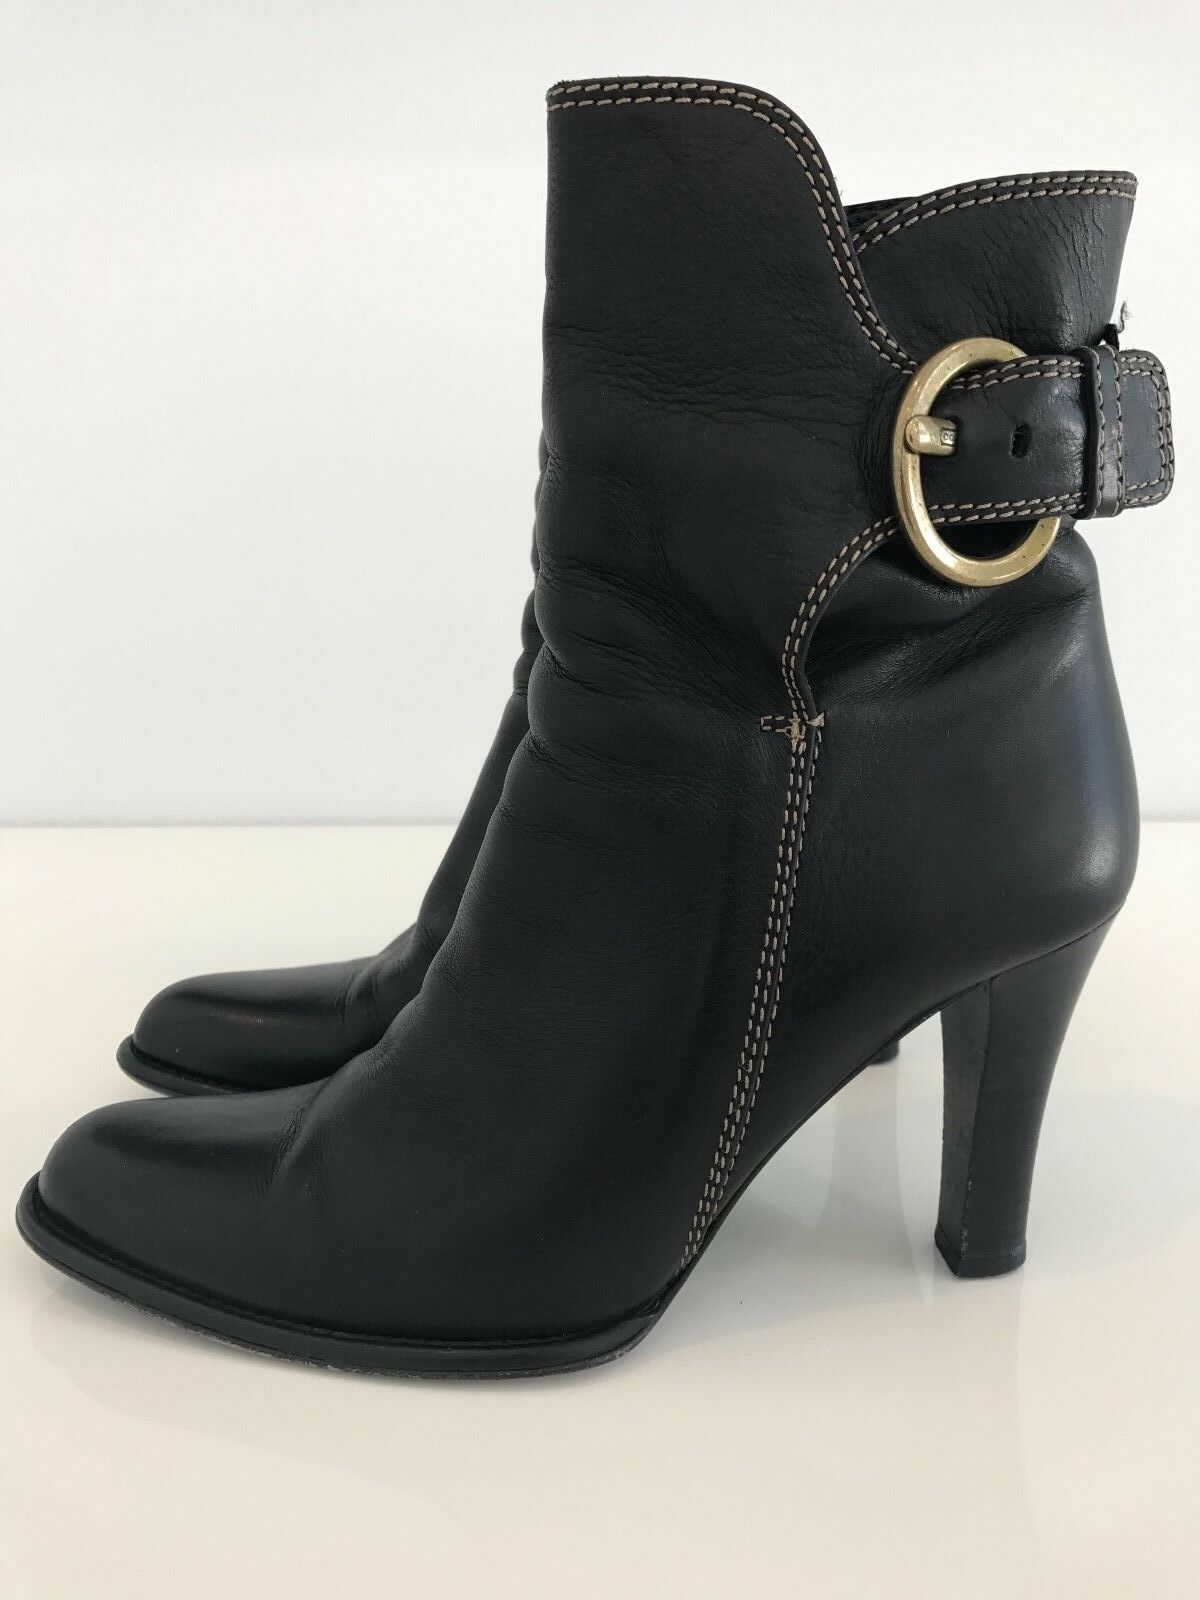 COACH NANCIE BLACK SOFT CALF LEATHER BOOT STYLE 920254 SIZE US 7.5